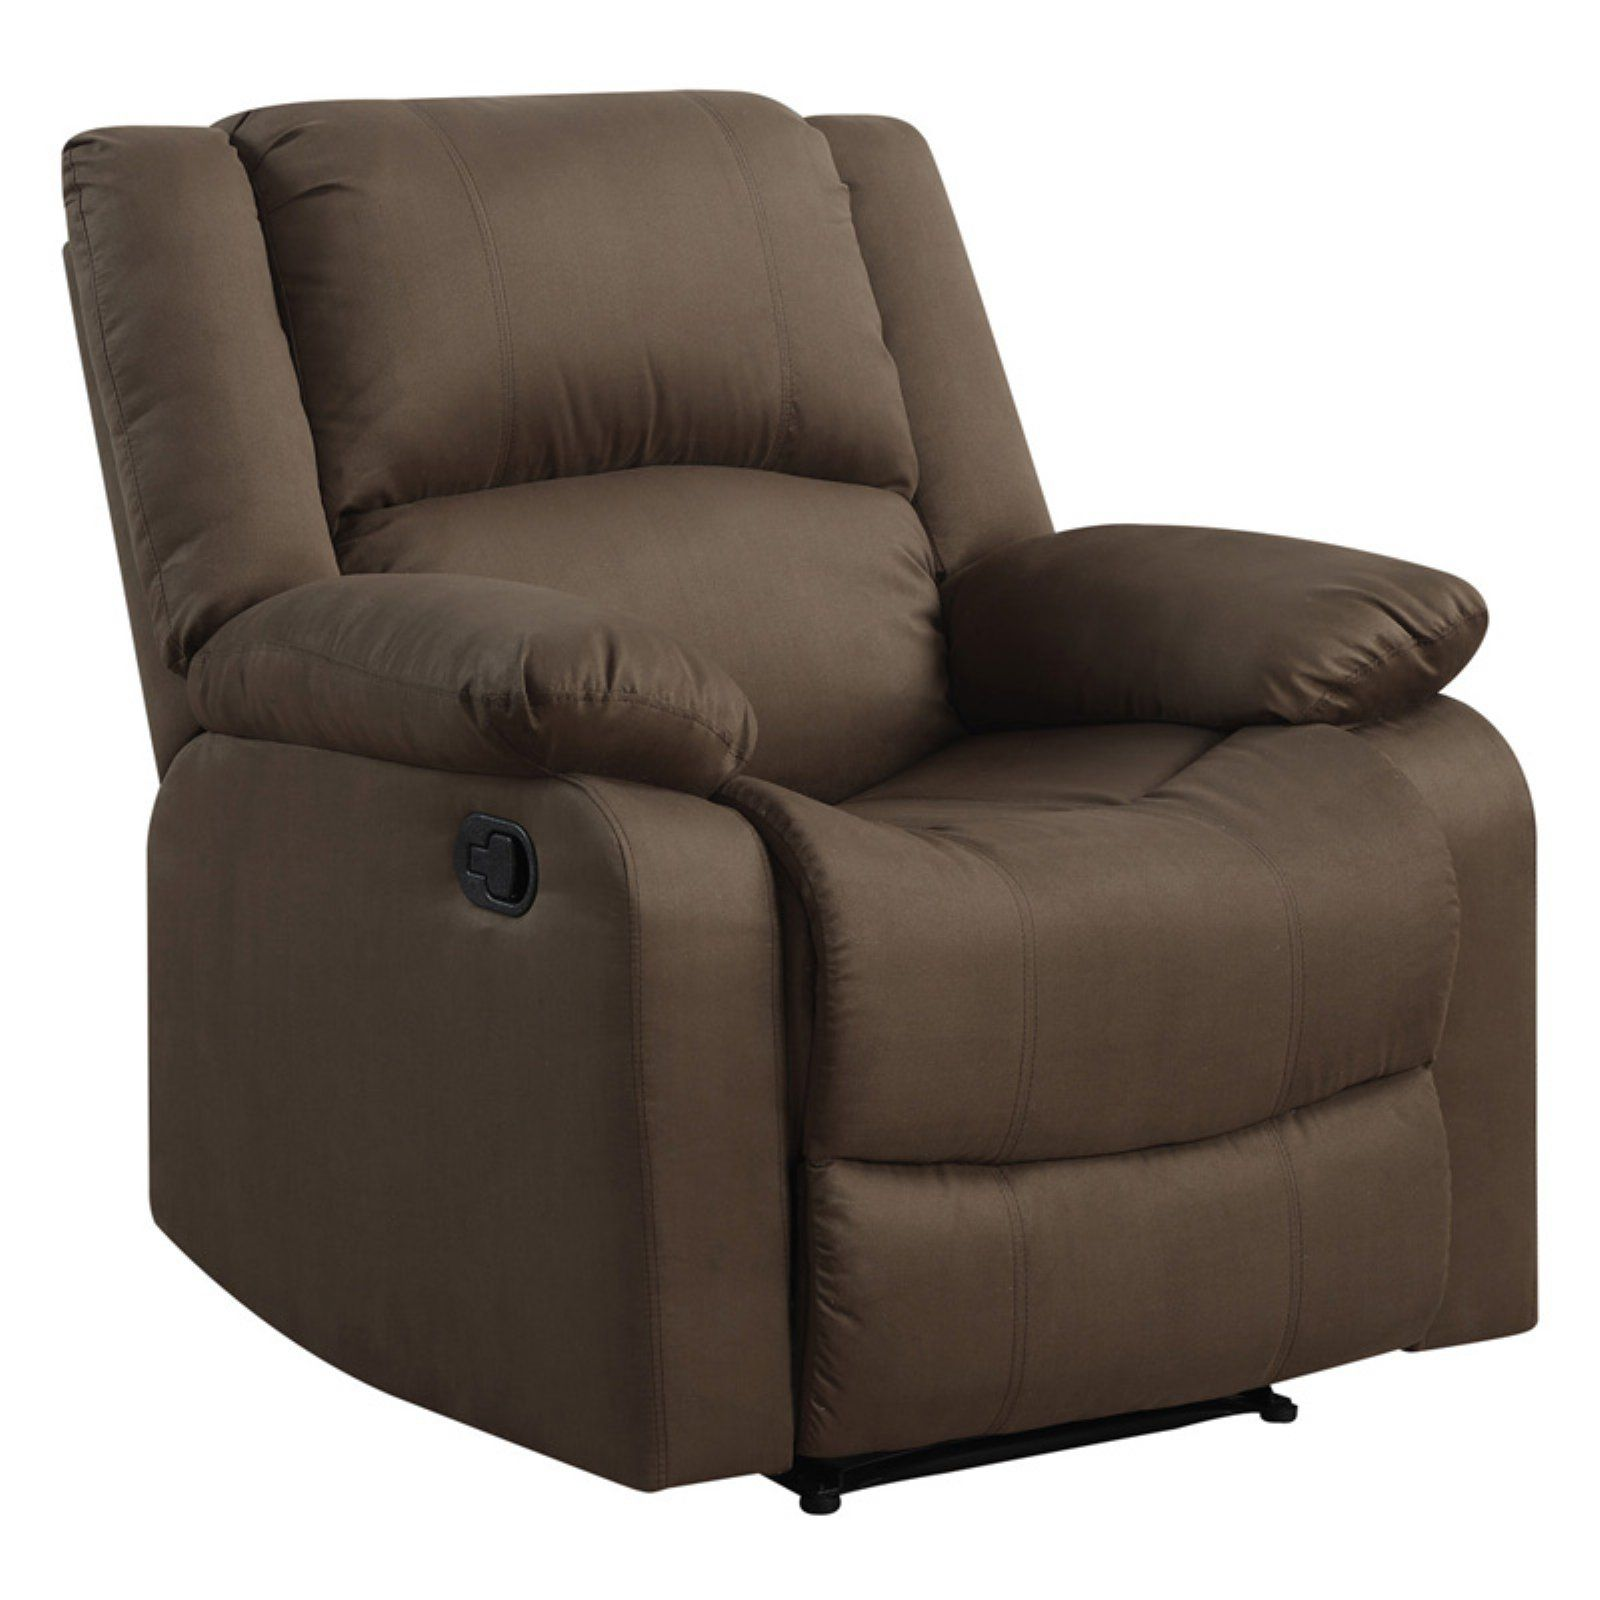 Enjoyable Lifestyle Solutions Parklin Recliner Chocolate Products In Unemploymentrelief Wooden Chair Designs For Living Room Unemploymentrelieforg